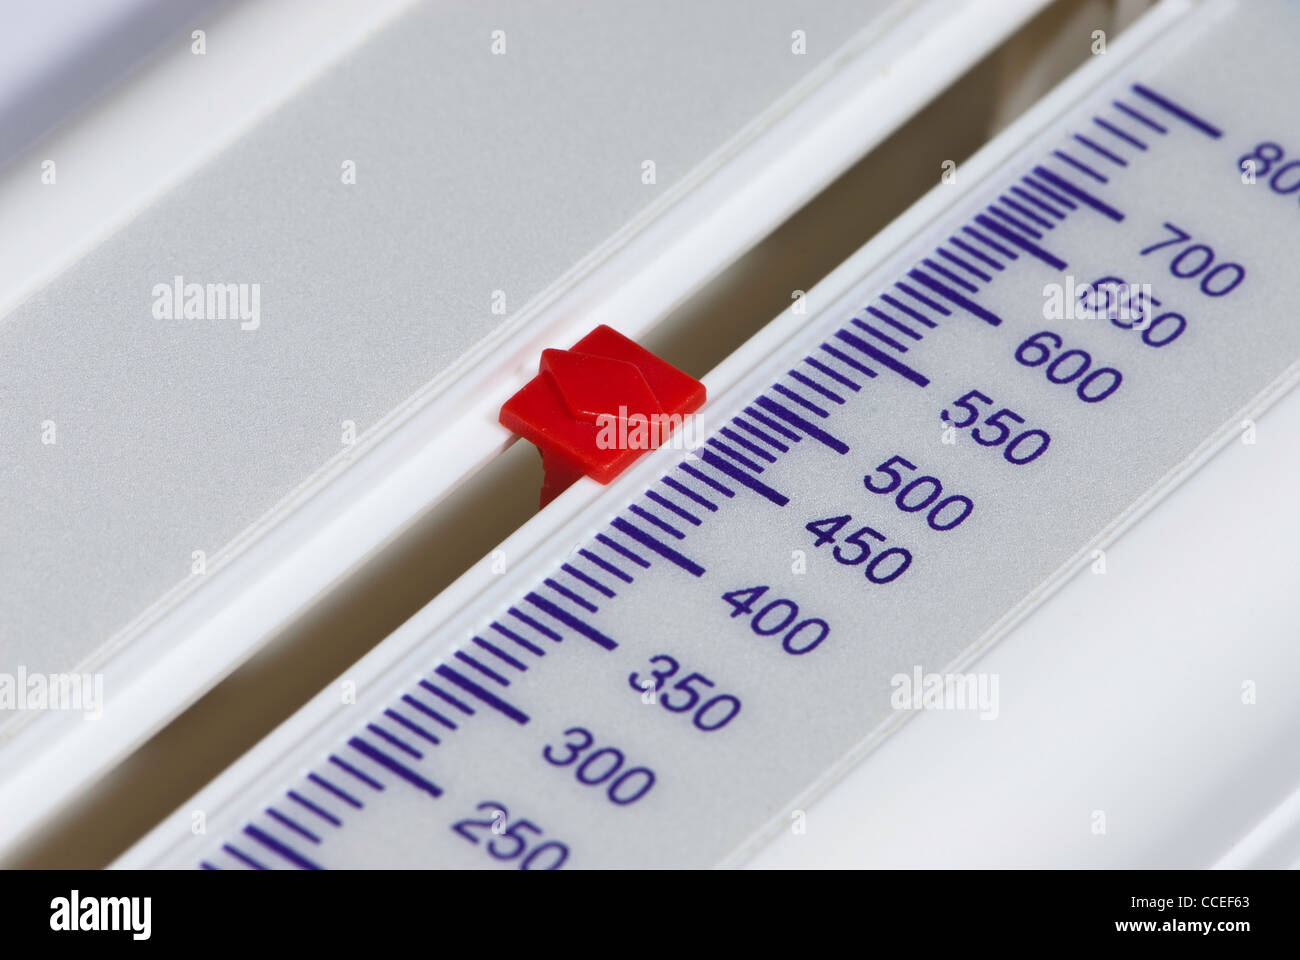 Close up of scale on a Peak flow meter at 450 - Stock Image